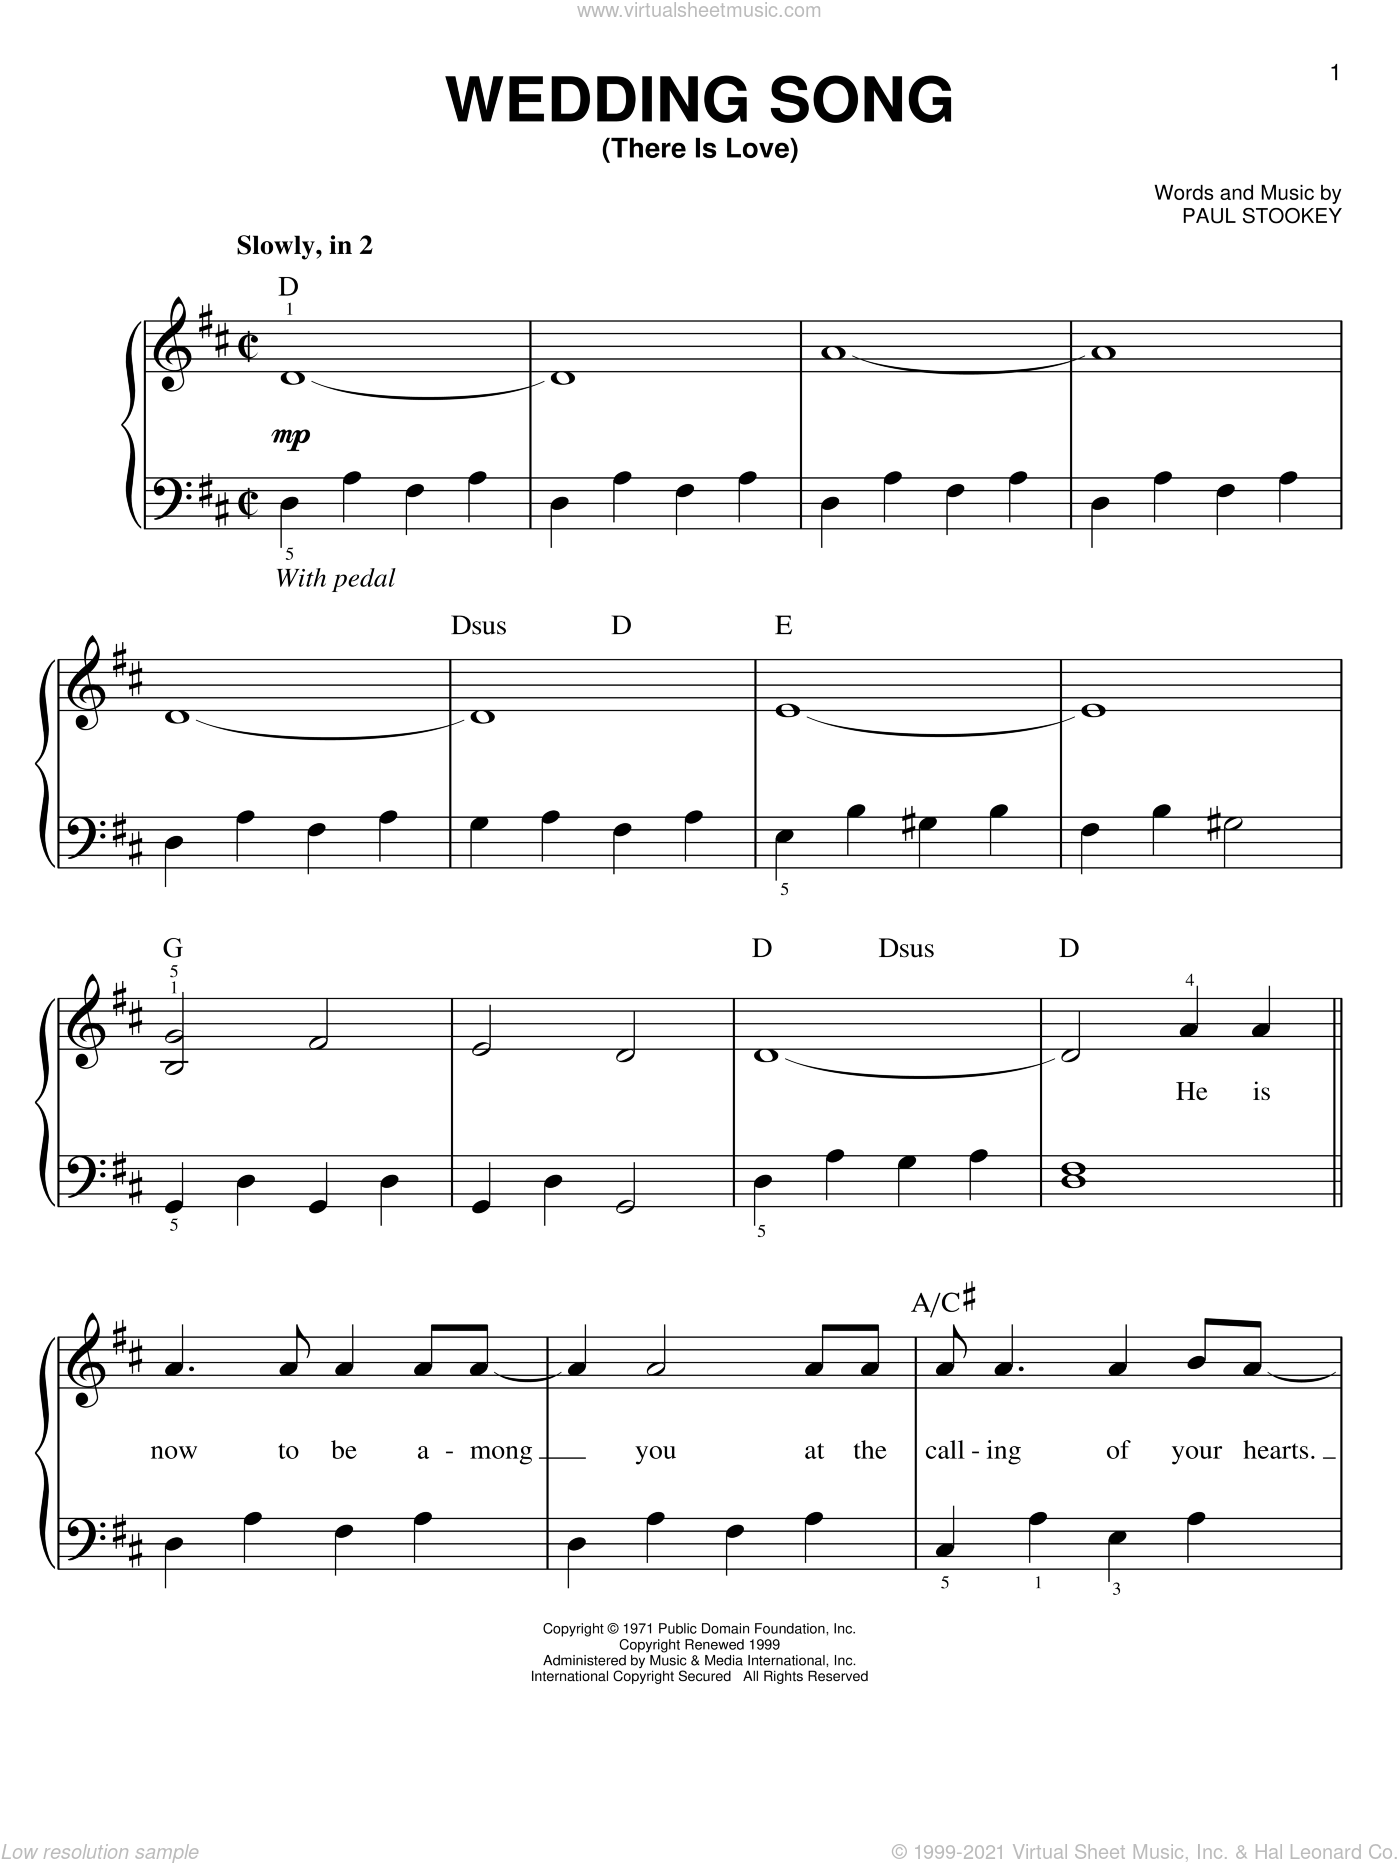 Wedding Song (There Is Love), (easy) sheet music for piano solo by Peter, Paul & Mary, Petula Clark and Paul Stookey, wedding score, easy skill level